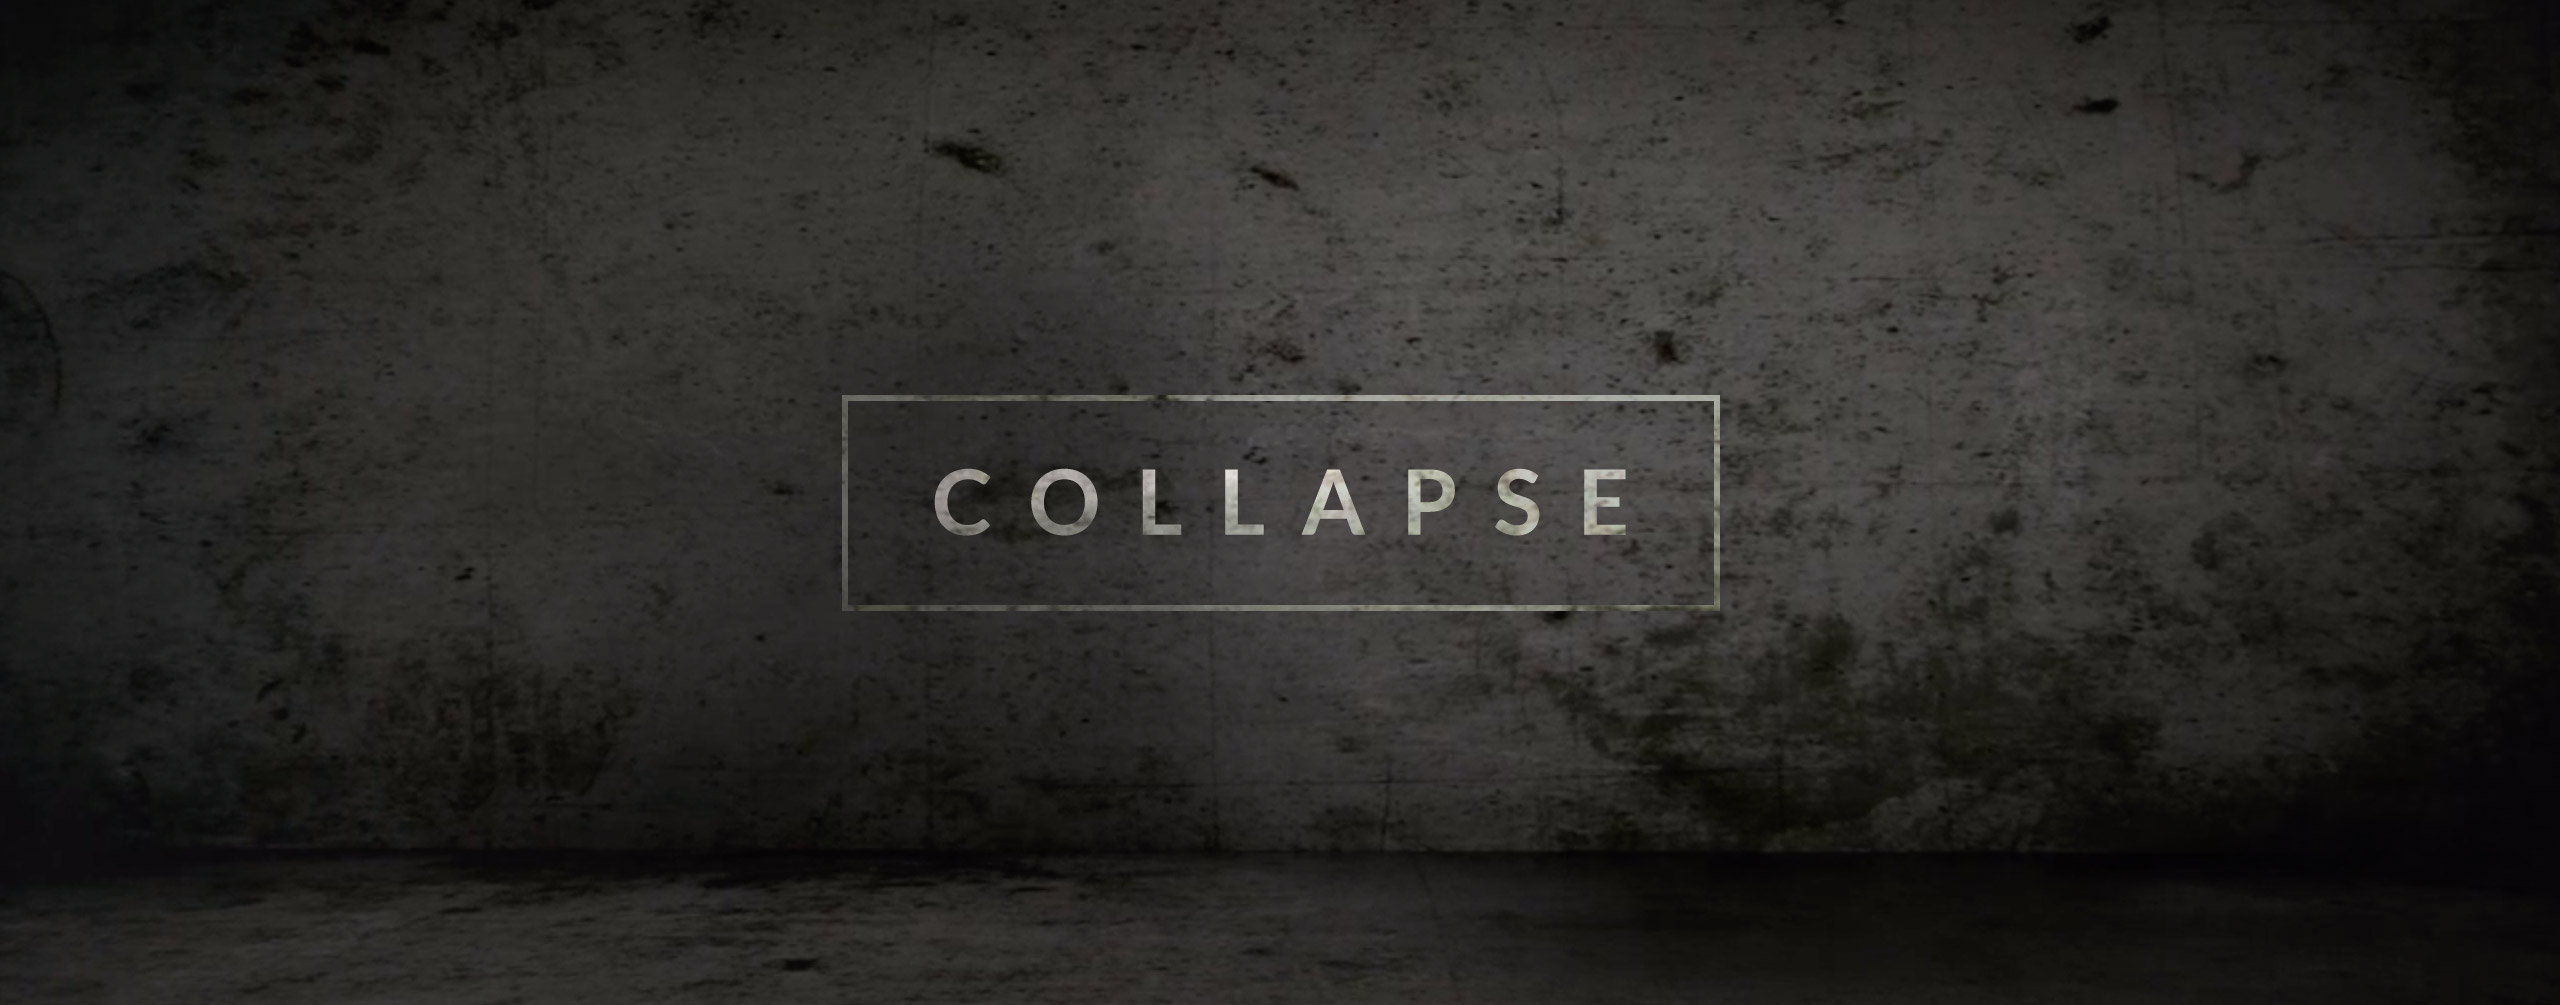 Collapse - Debris Effects